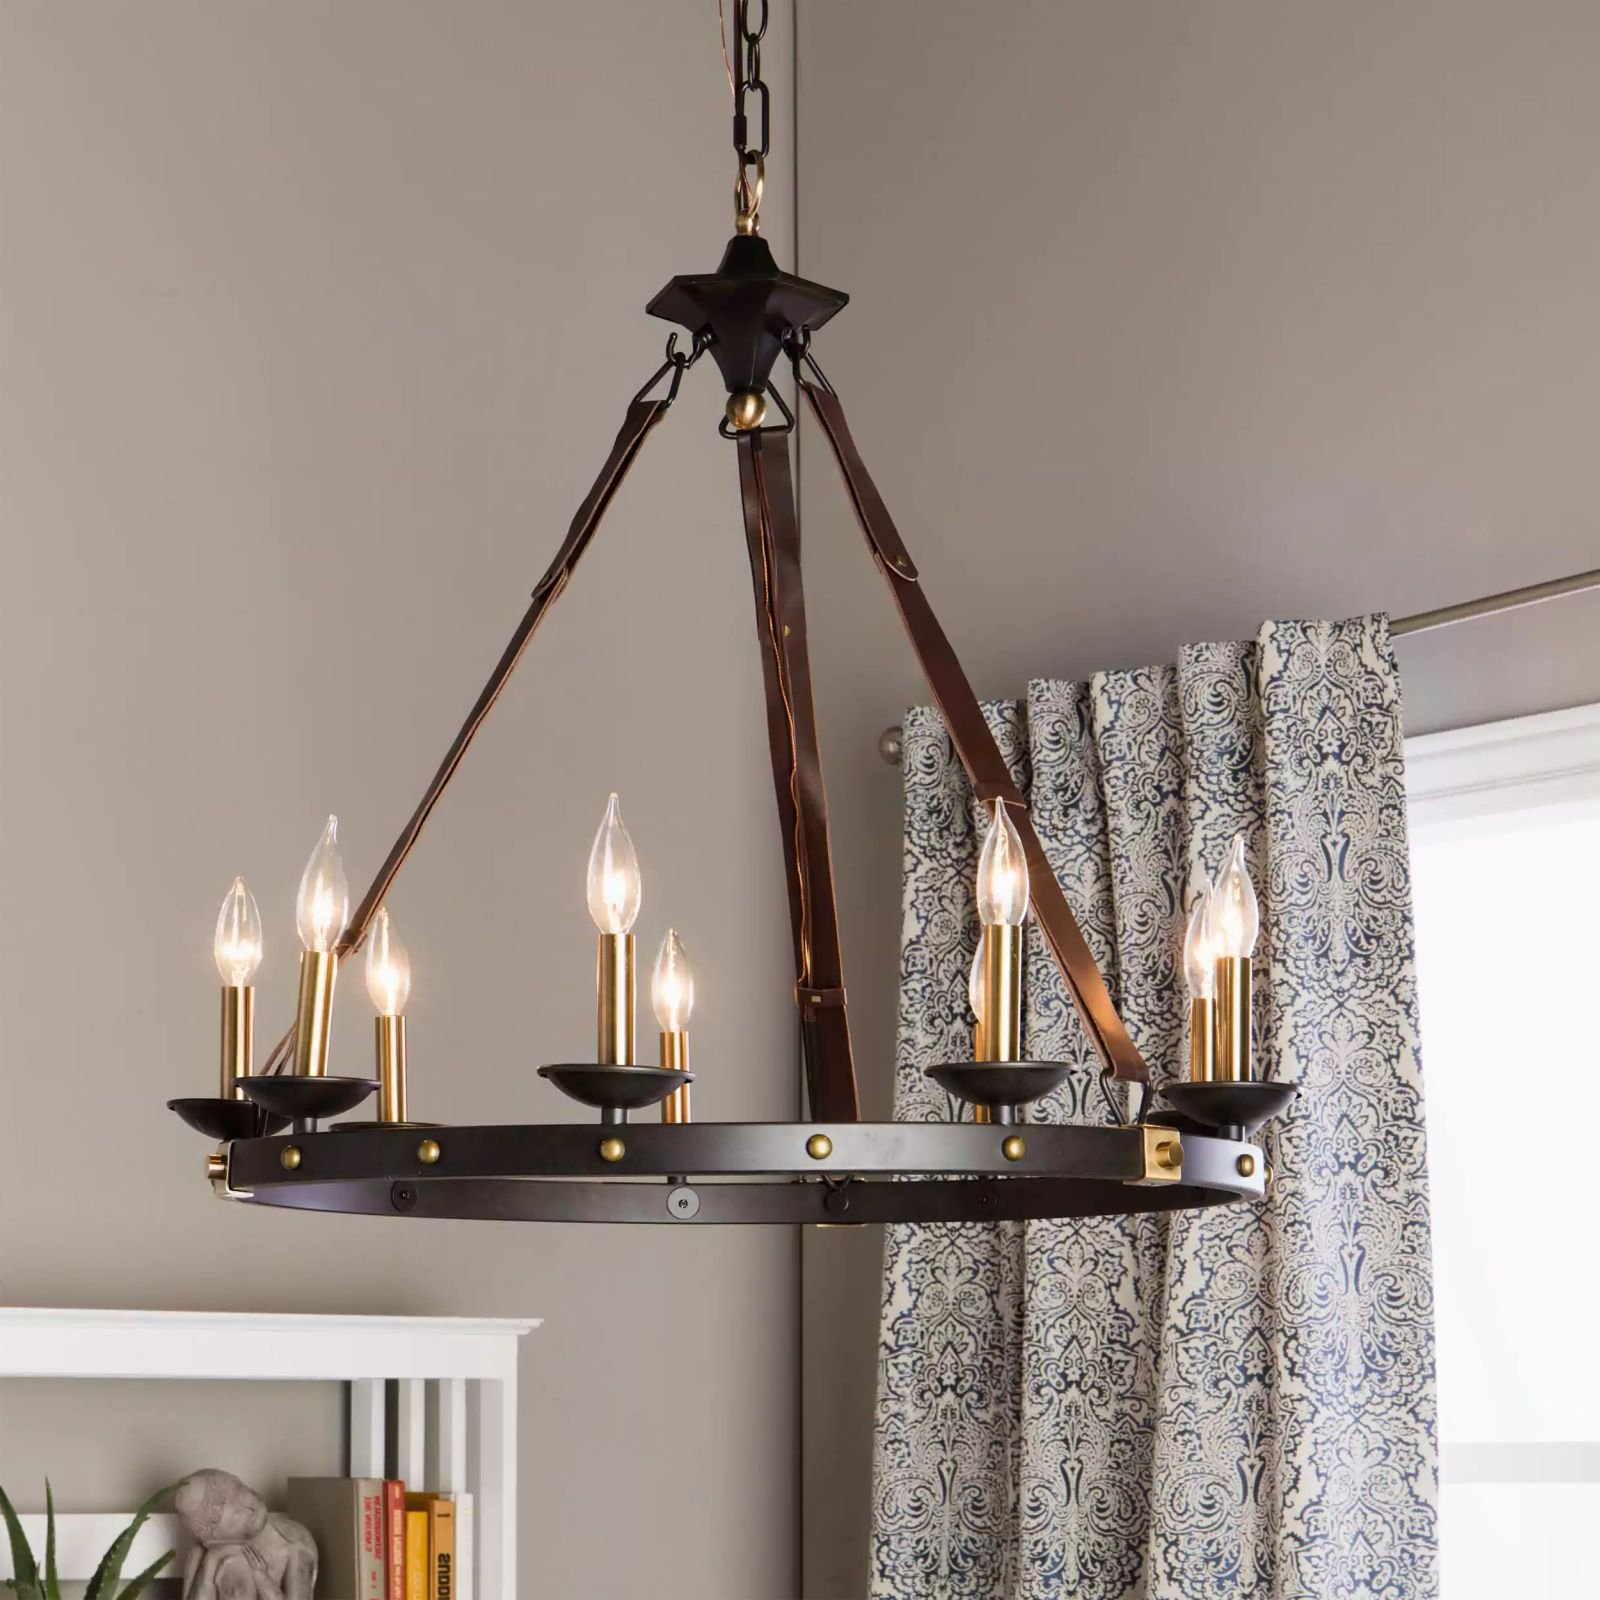 Rustic Chandelier Lighting Great For High And Low Ceiling Rooms. Circular Round Fixture Provides Warm Multidirectional Light. Candle Style Modern Farmhouse 29'' Hanging Lamp Invites Timeless Atmosphere by MFR Light Fixtures